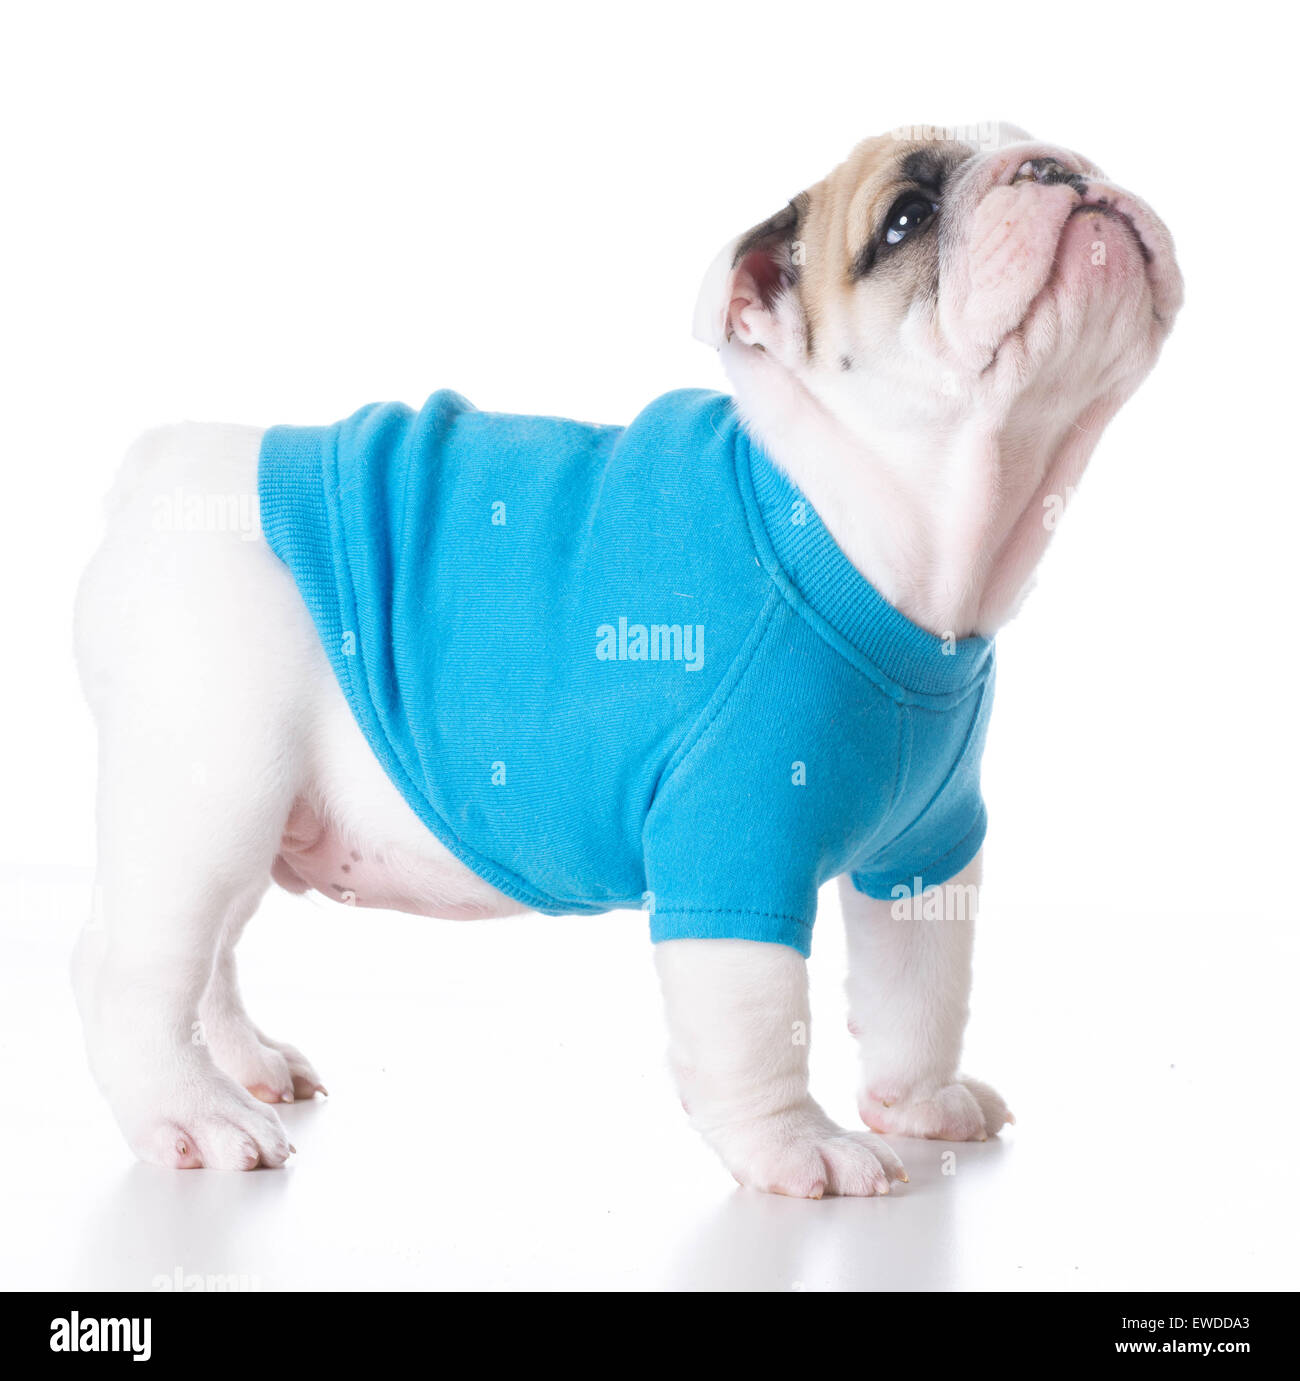 cute puppy - bulldog puppy wearing a blue sweater standing on white background 7 weeks old - Stock Image